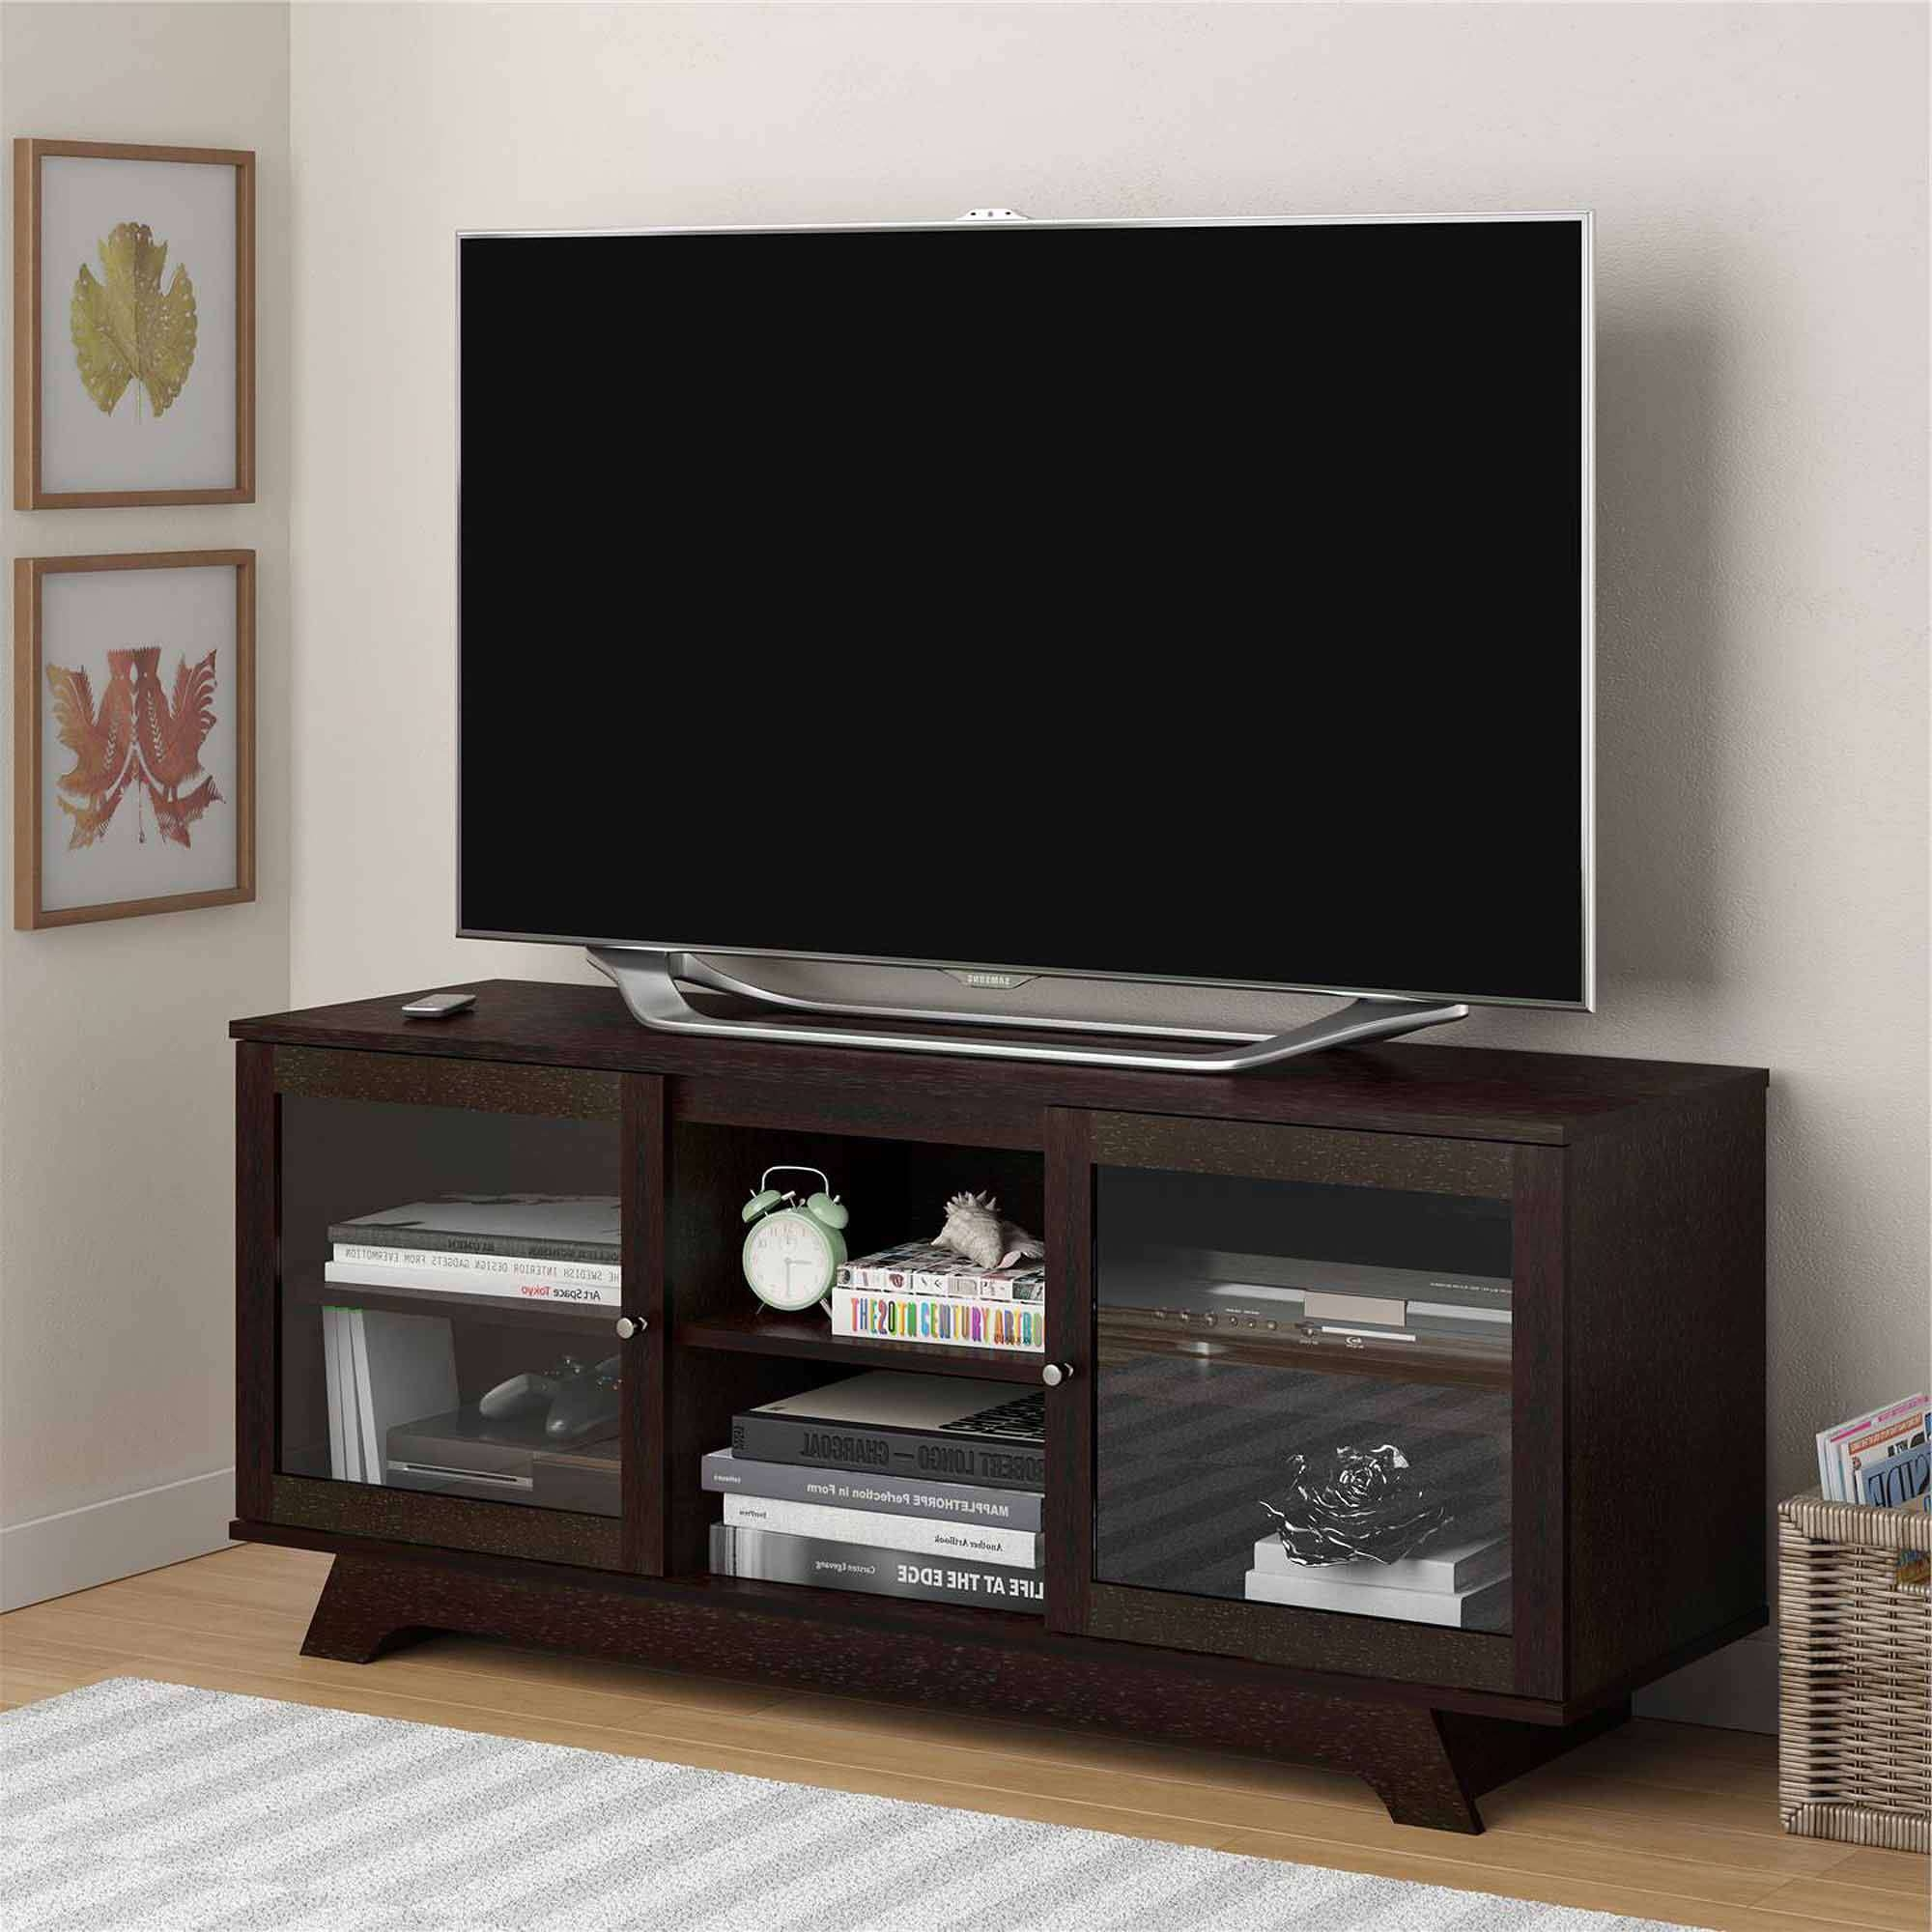 Tv Stands & Entertainment Centers – Walmart Intended For Led Tv Stands (View 19 of 20)